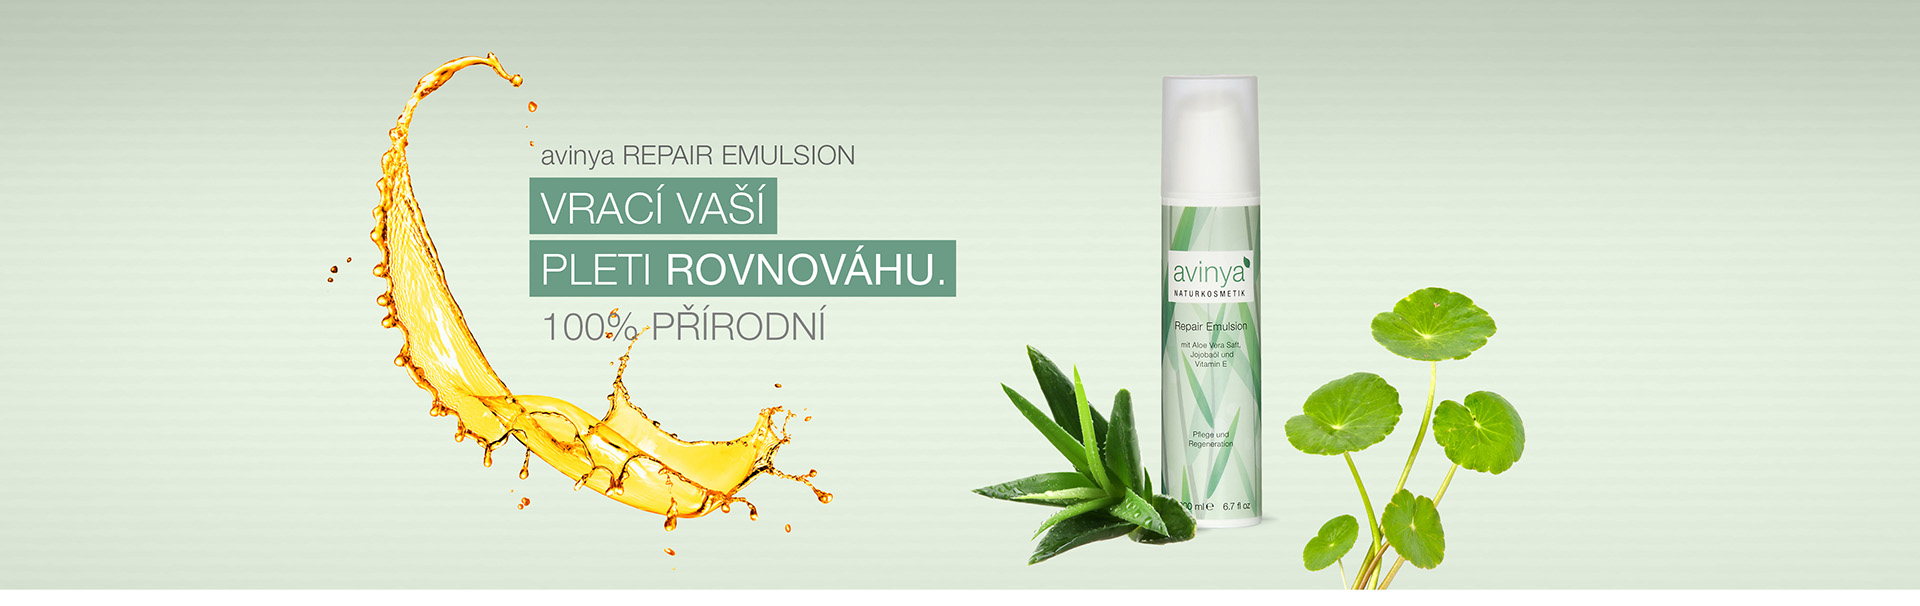 avinya REPAIR EMULSION